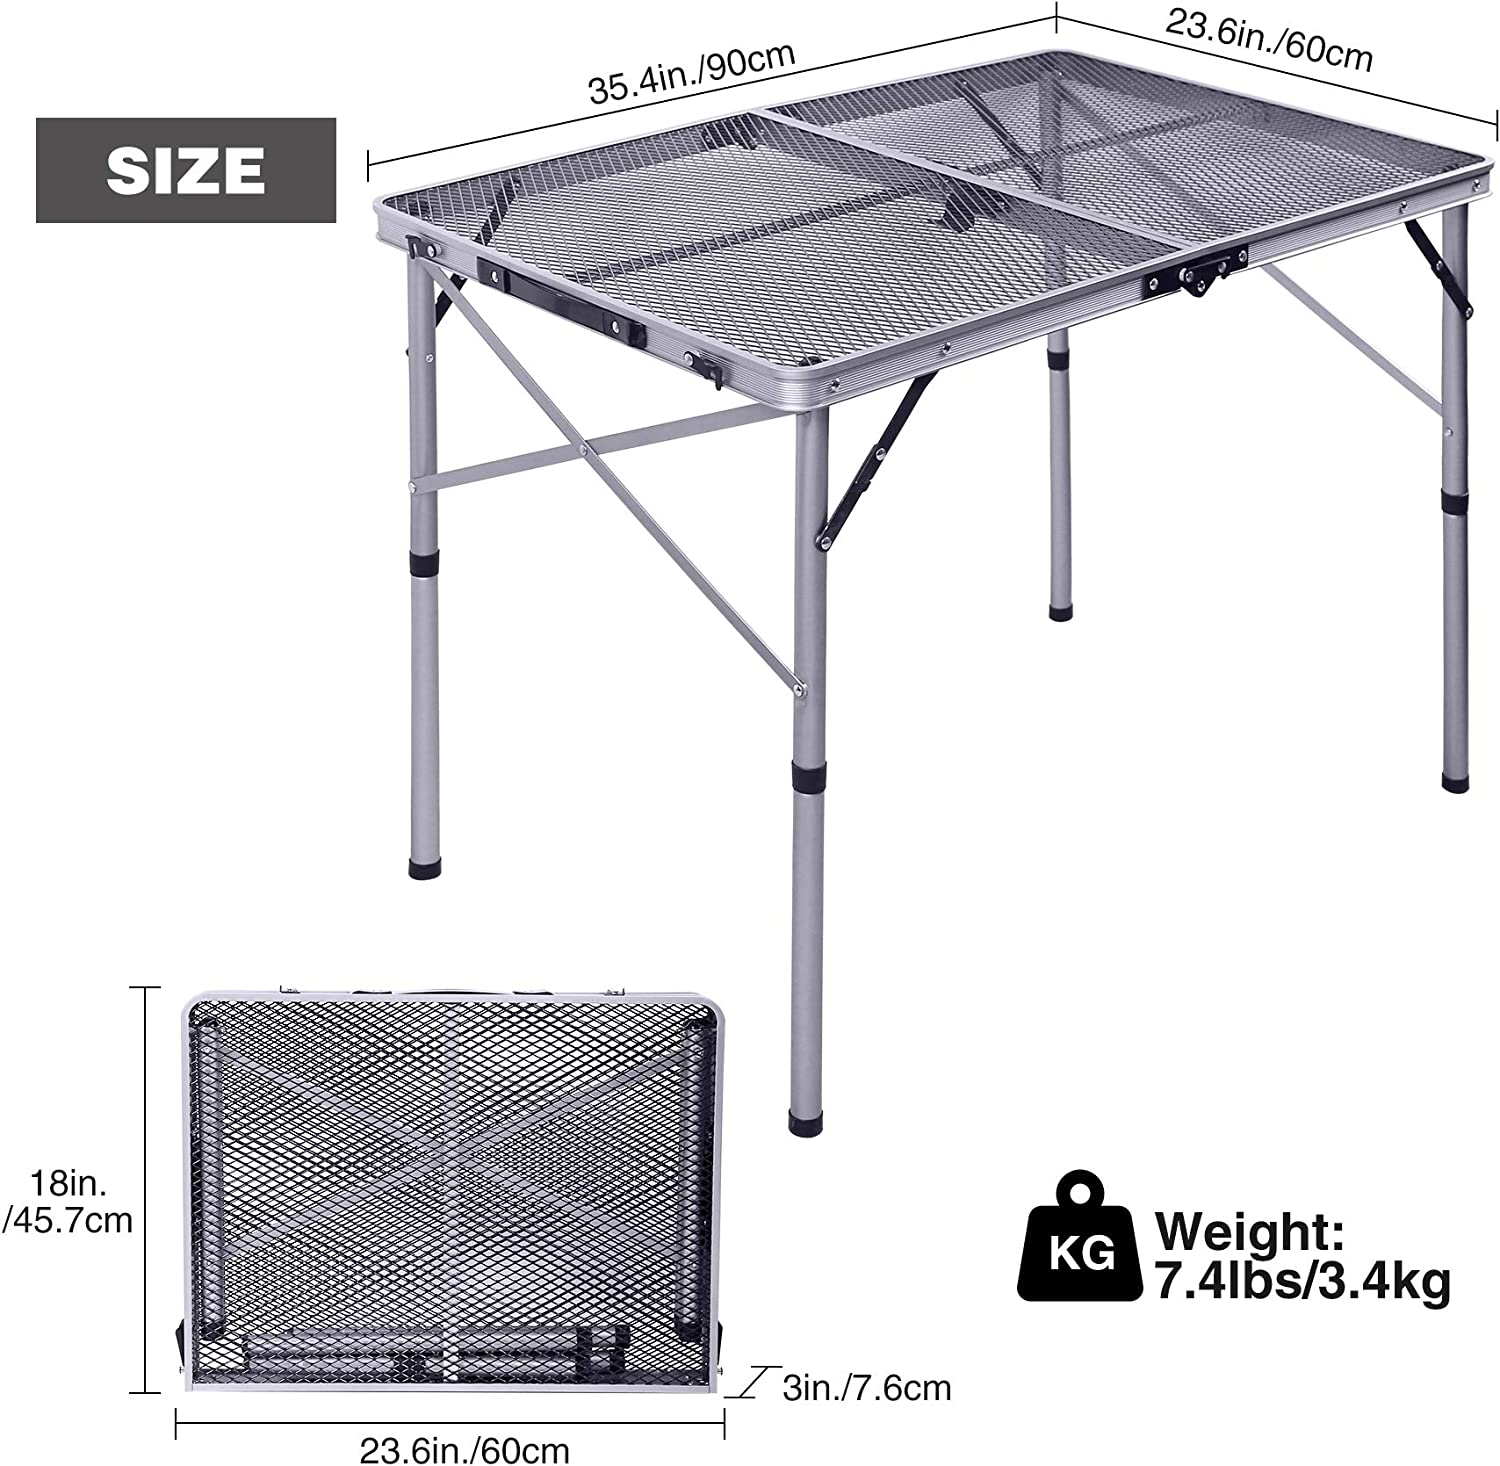 Aluminum Lightweight Portable Grill Stand Table with Adjustable Height Varbucamp Foldable Grill Table for Outdoor Cooking Outdoor Silver 36/×24 Outside BBQ Picnic for Camping